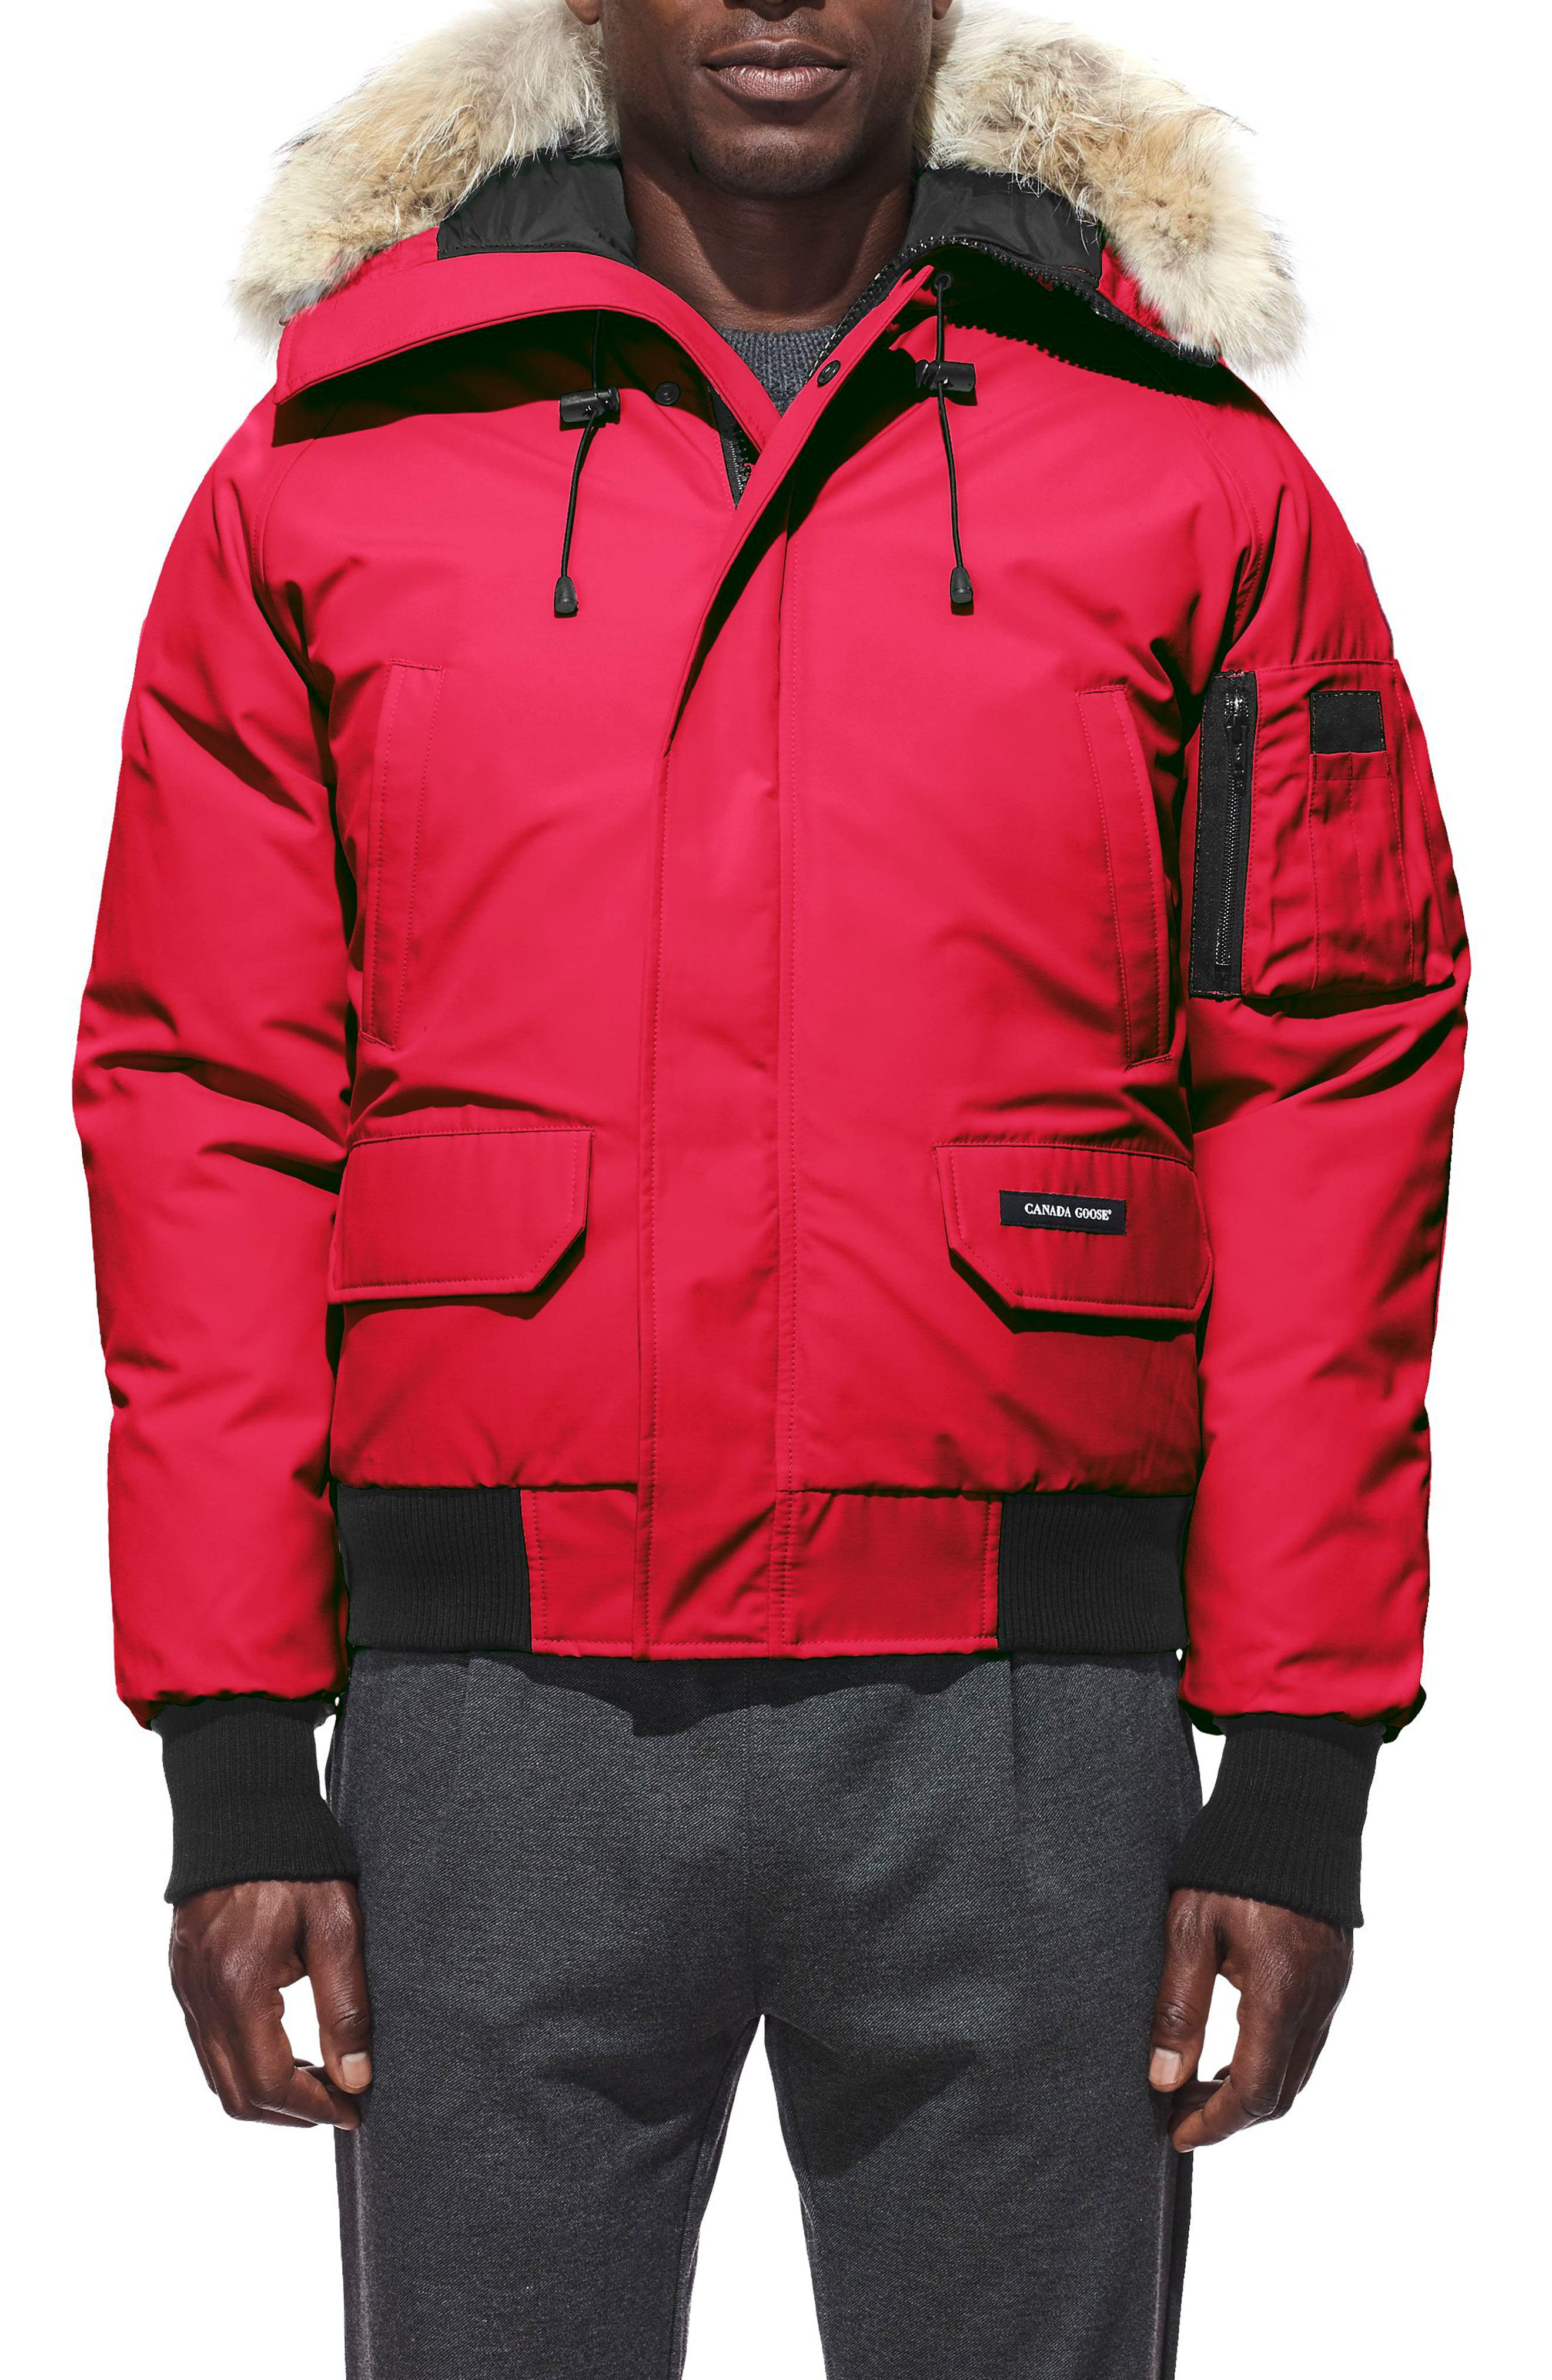 Canada Goose Pbi Chilliwack Regular Fit Down Bomber Jacket With Genuine Coyote Trim, Red